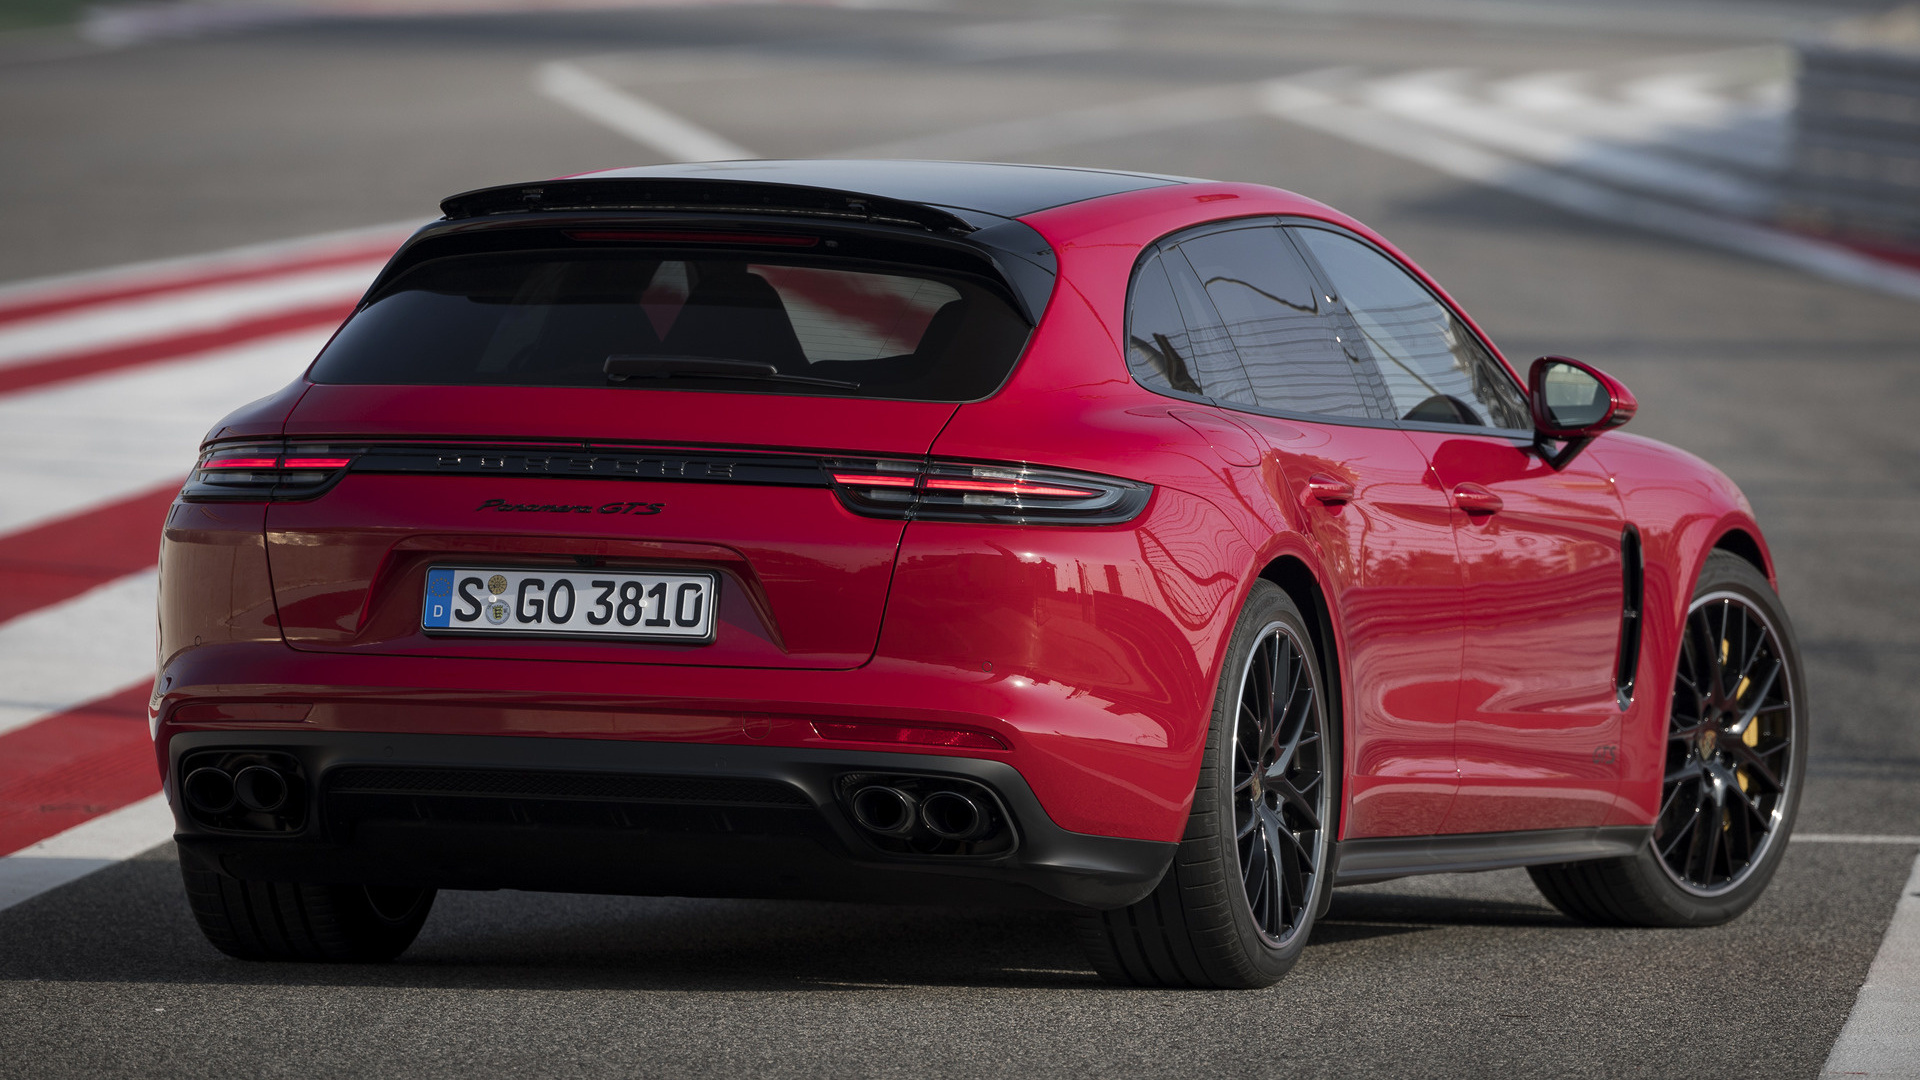 2018 Porsche Panamera GTS Sport Turismo , Wallpapers and HD